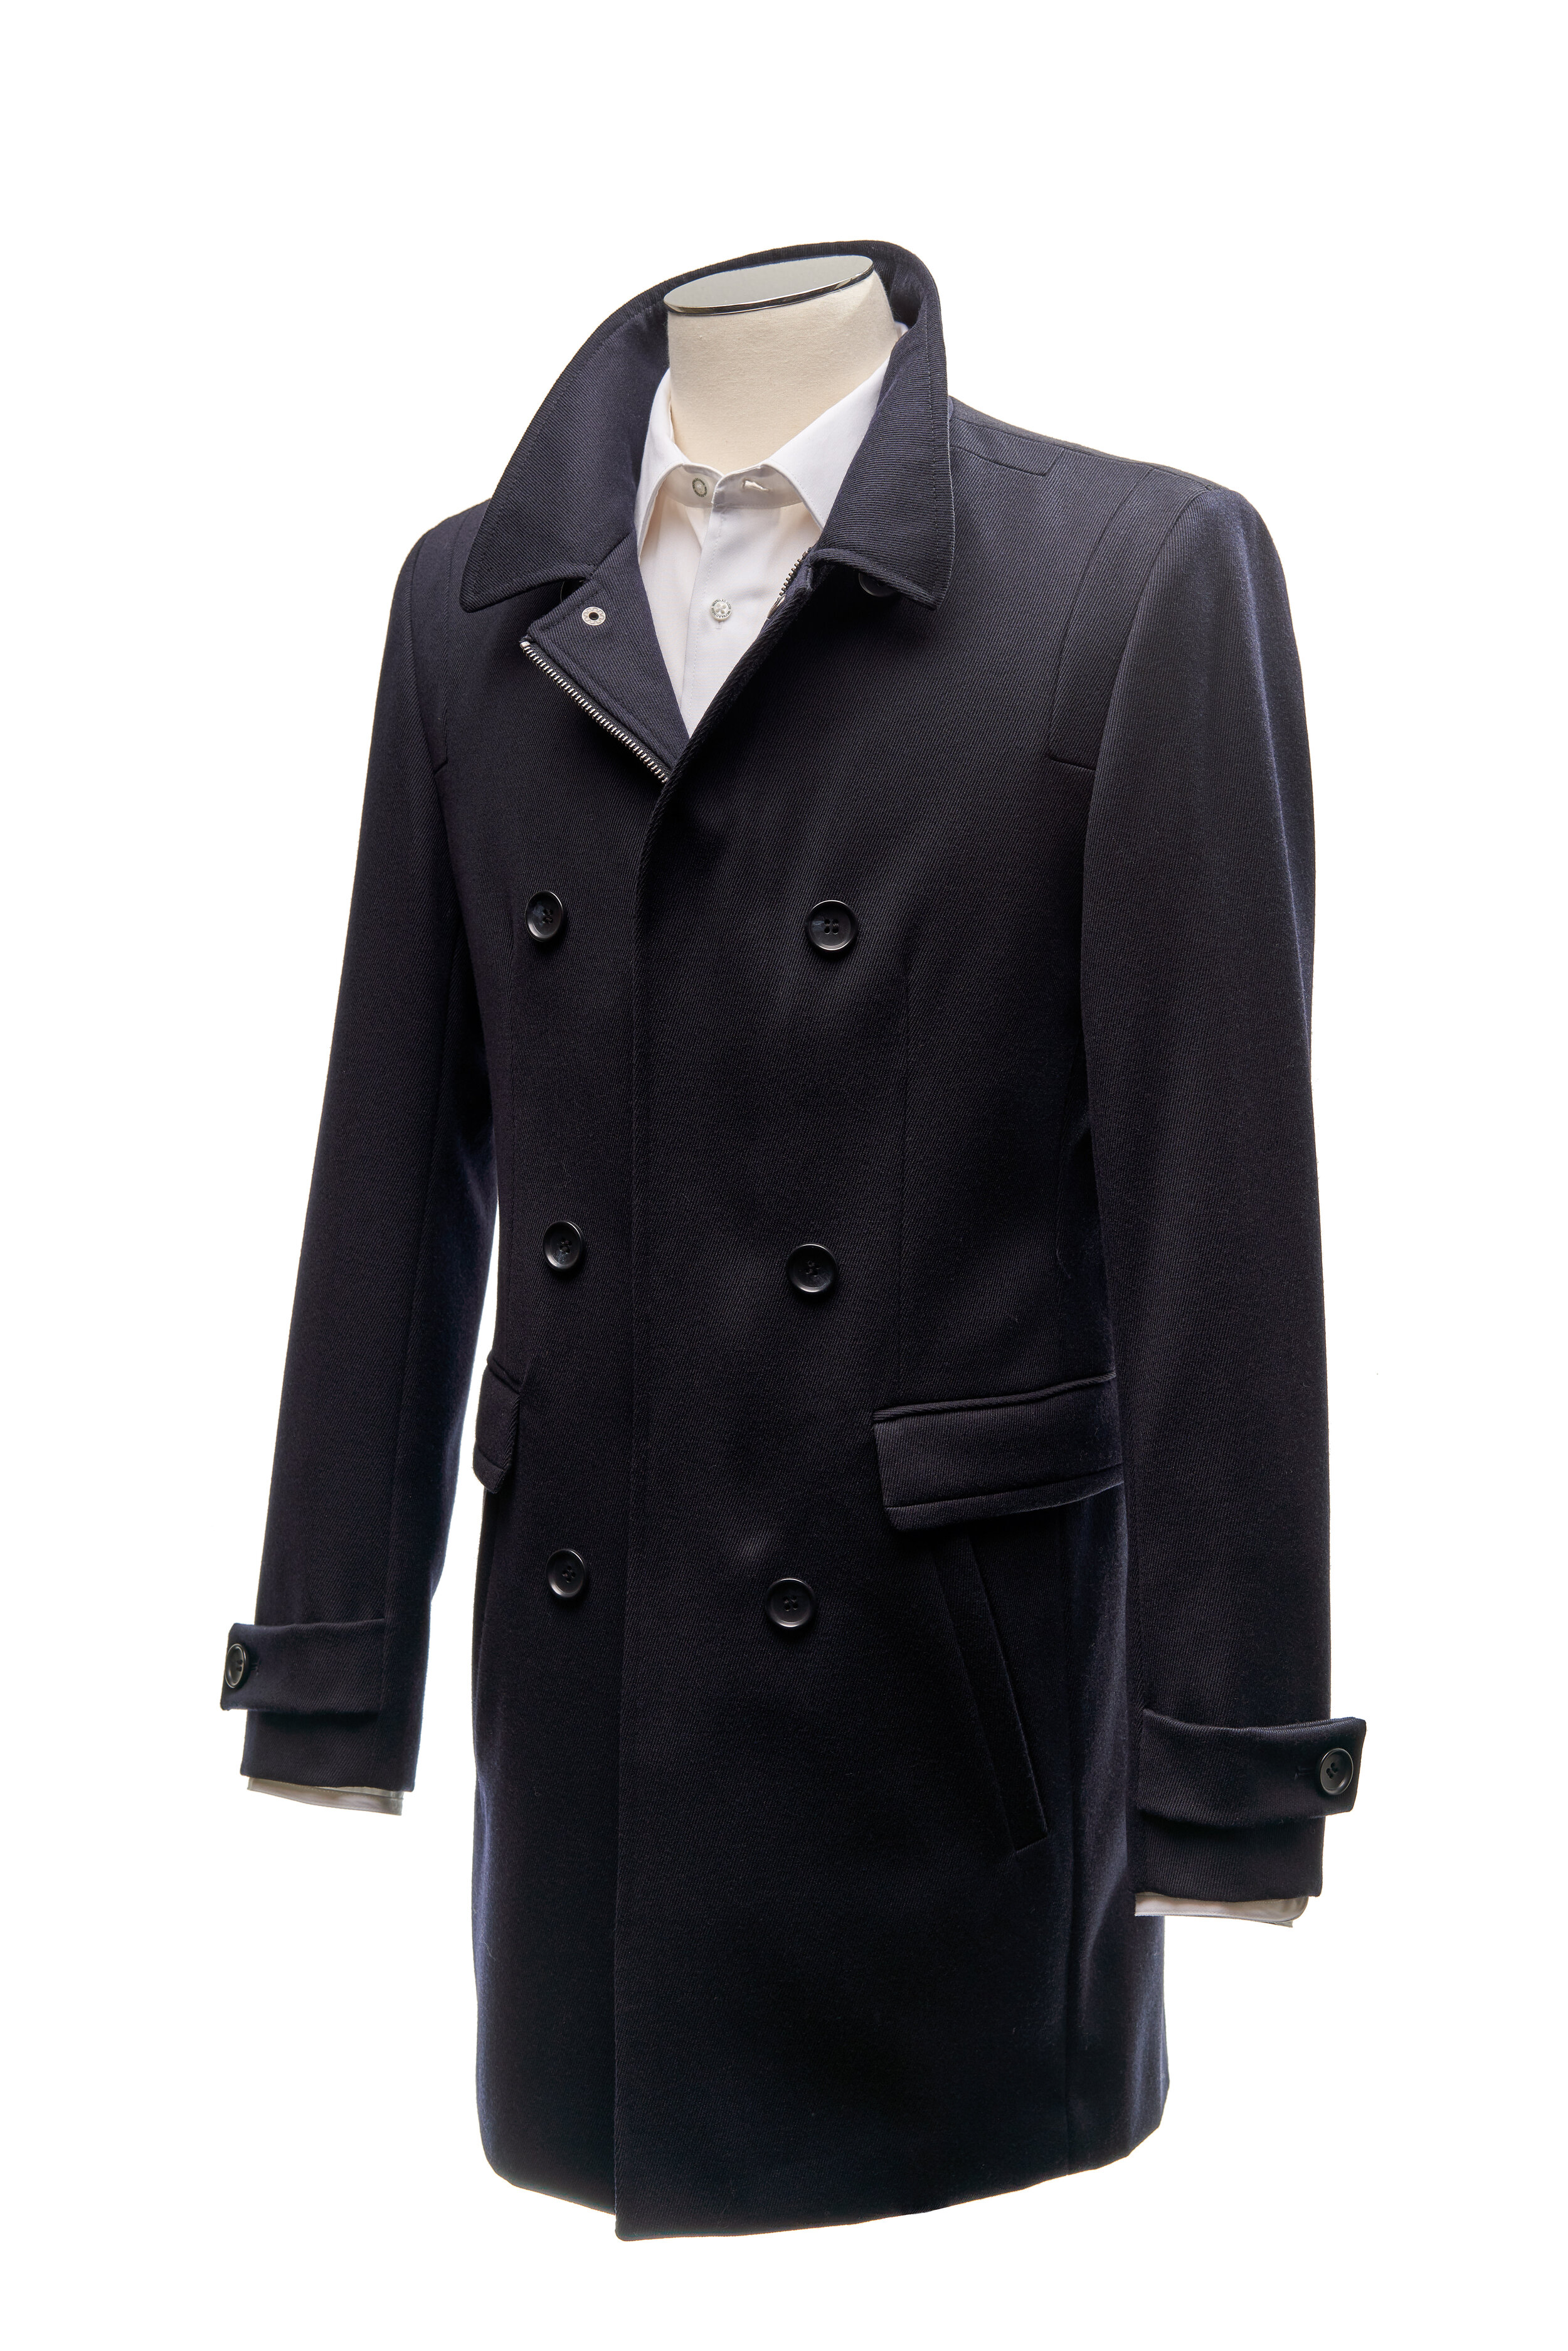 Navy Coating - Classic navy wool overcoat, six feature button, zipper front. Front pocket detail, with cuff button design.